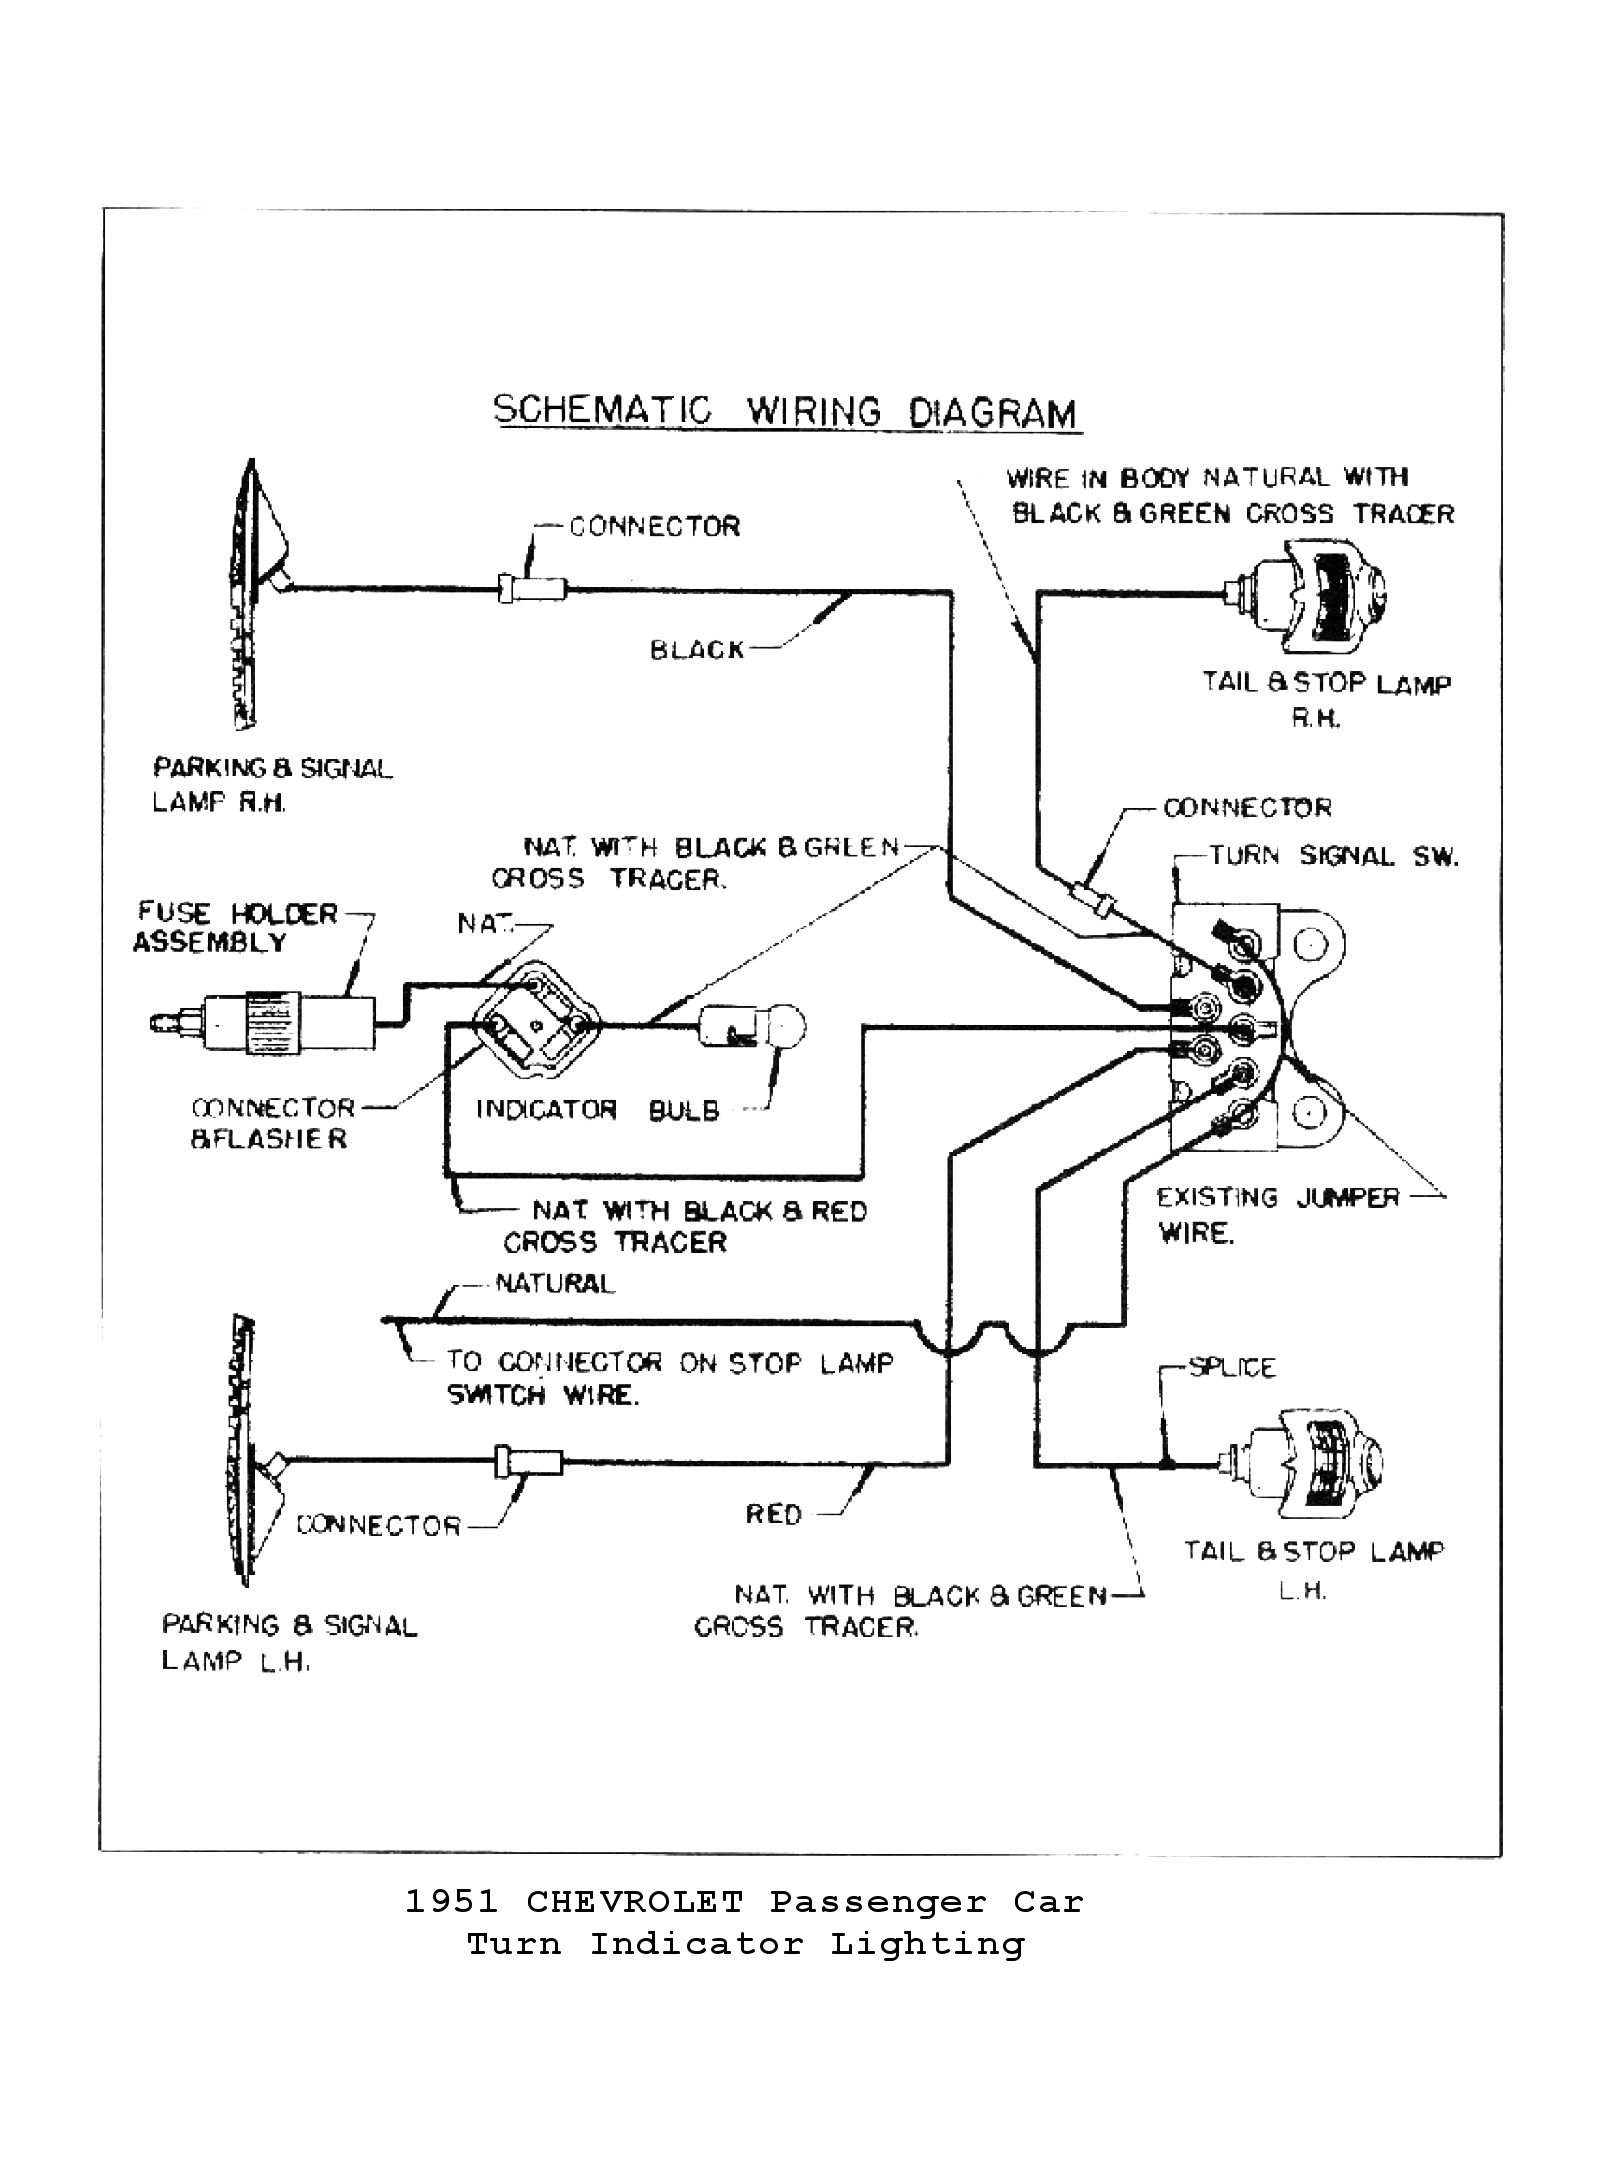 55 chevy ignition switch wiring wiring diagram gplight switch wiring diagram chev car diagram data schema 55 chevy ignition switch wiring